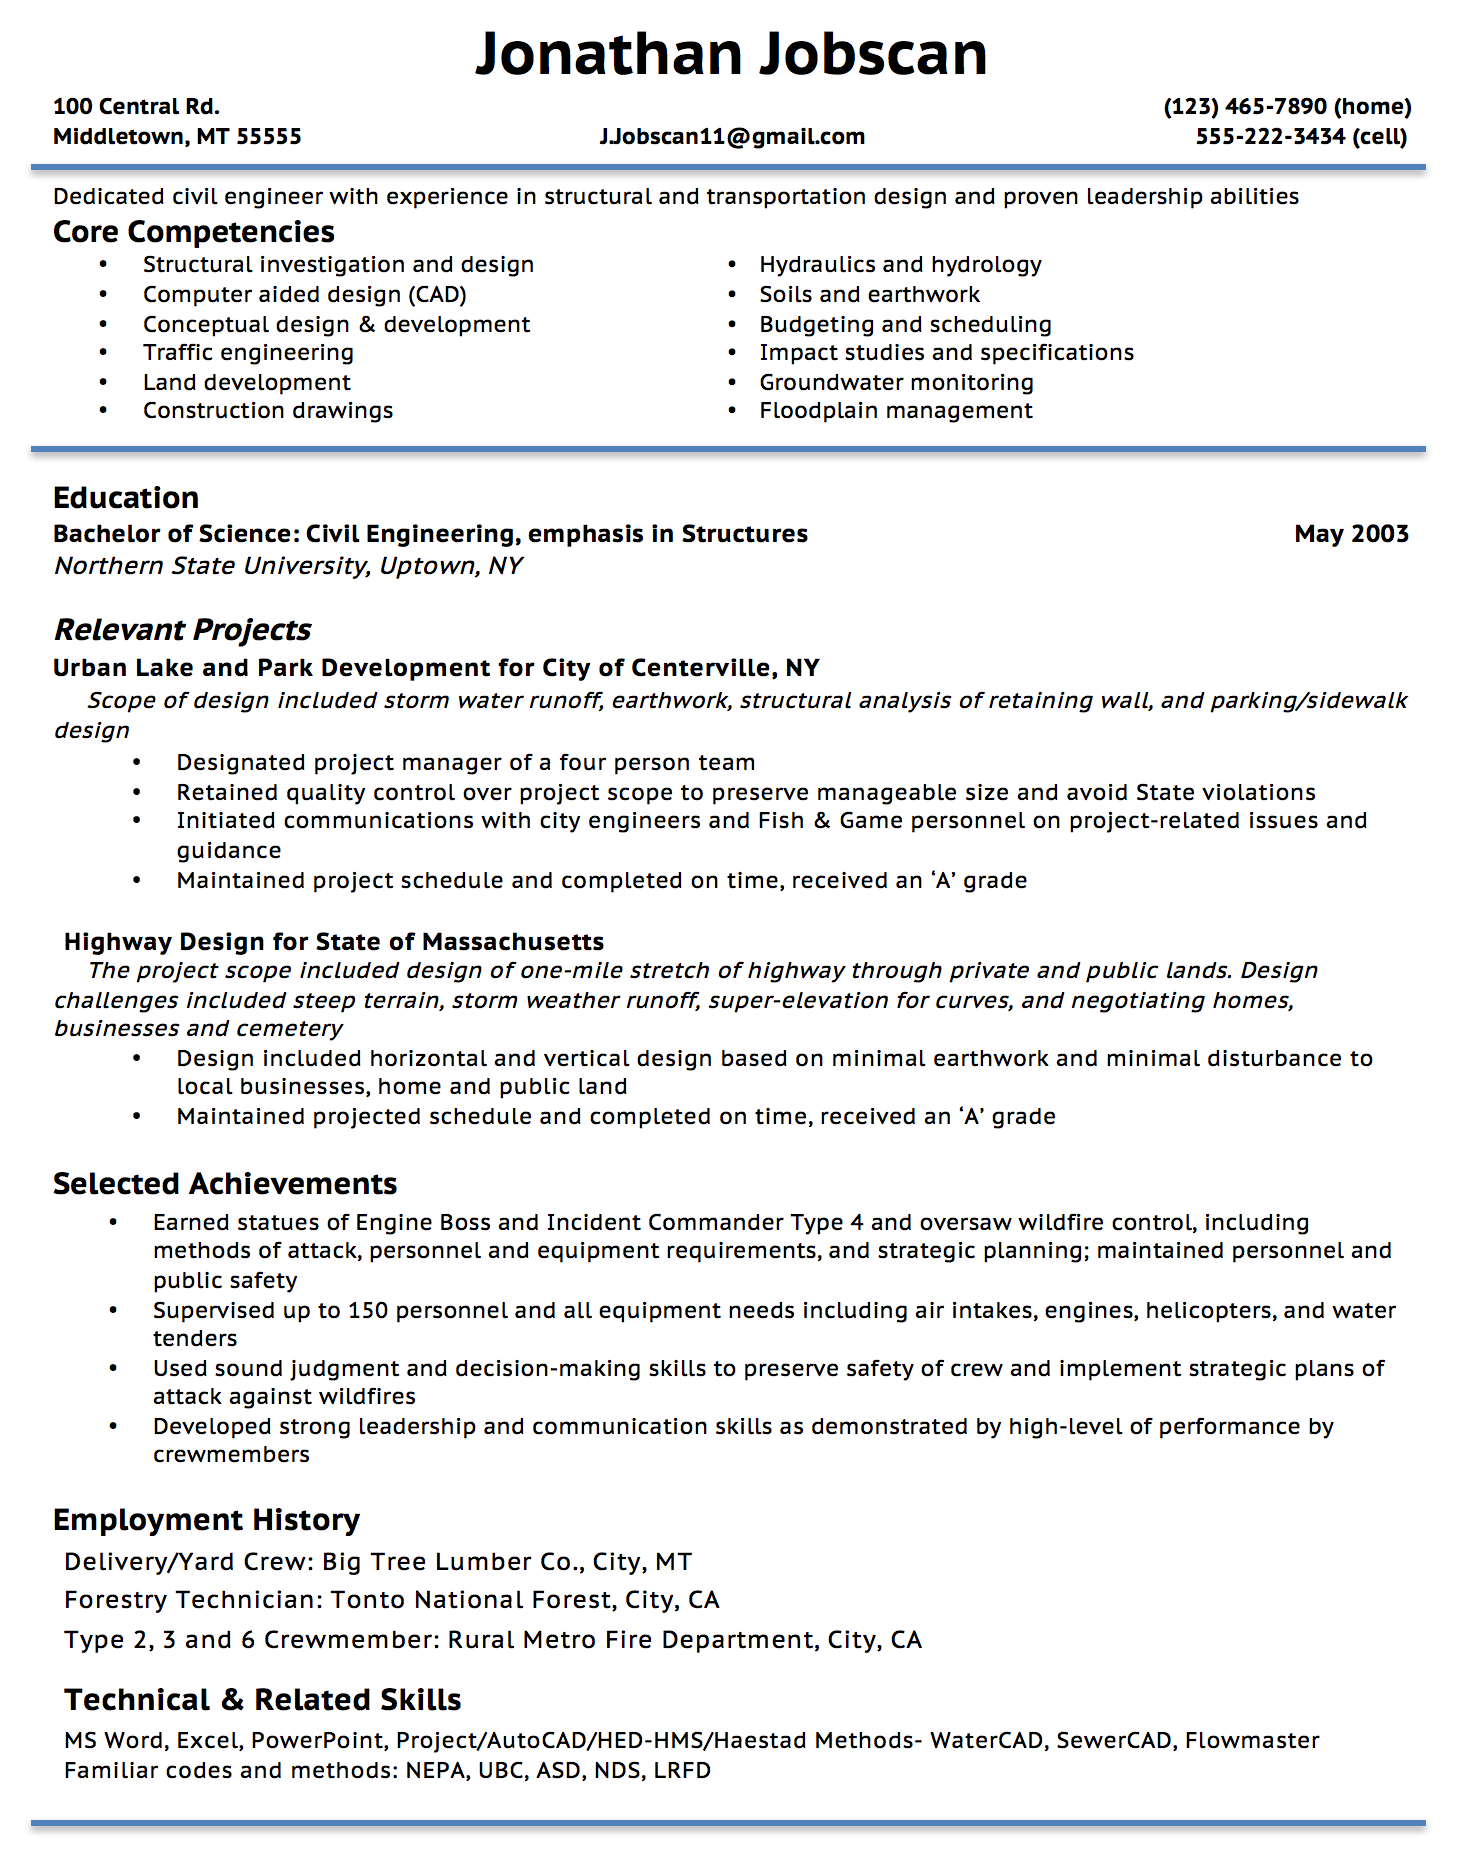 Opposenewapstandardsus  Marvellous Resume Writing Guide  Jobscan With Interesting Example Of A Functional Resume Format With Cute Free Help With Resume Also How To Properly Make A Resume In Addition Successful Resume Format And Steps To Writing A Resume As Well As Resume Reverse Chronological Order Additionally Executive Administrative Assistant Resume Sample From Jobscanco With Opposenewapstandardsus  Interesting Resume Writing Guide  Jobscan With Cute Example Of A Functional Resume Format And Marvellous Free Help With Resume Also How To Properly Make A Resume In Addition Successful Resume Format From Jobscanco